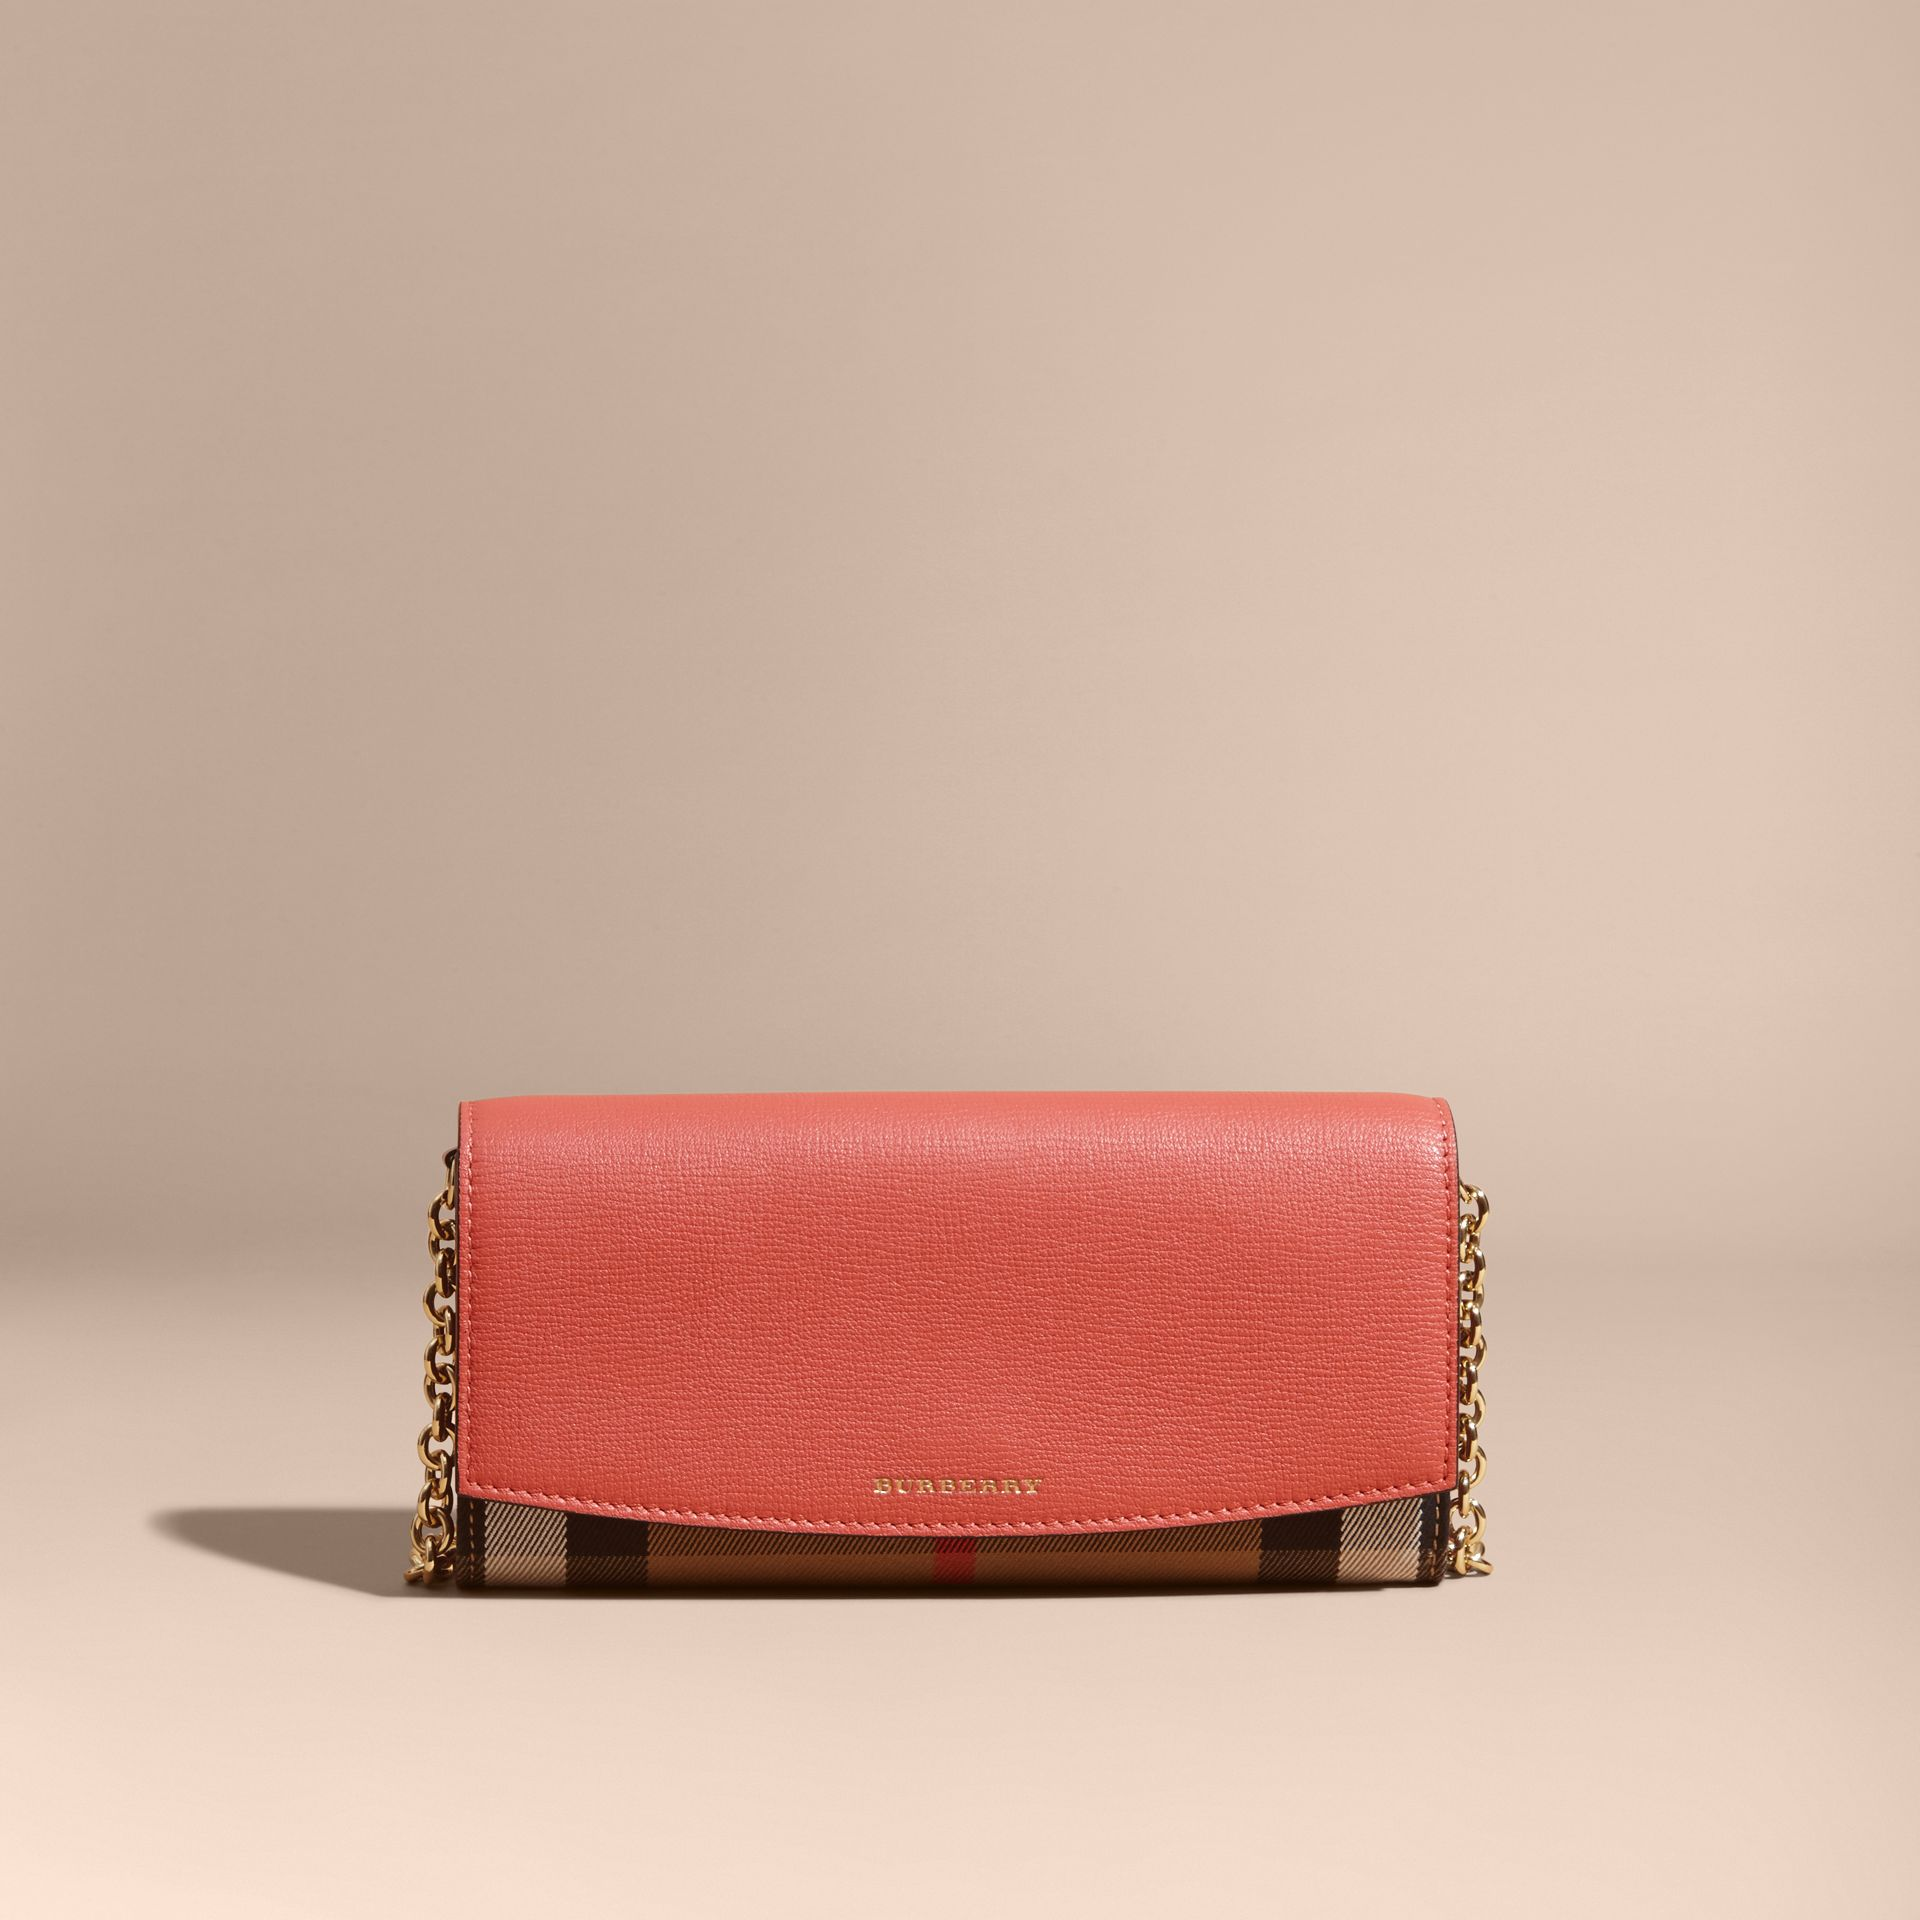 House Check and Leather Wallet with Chain in Cinnamon Red - Women | Burberry United States - gallery image 7